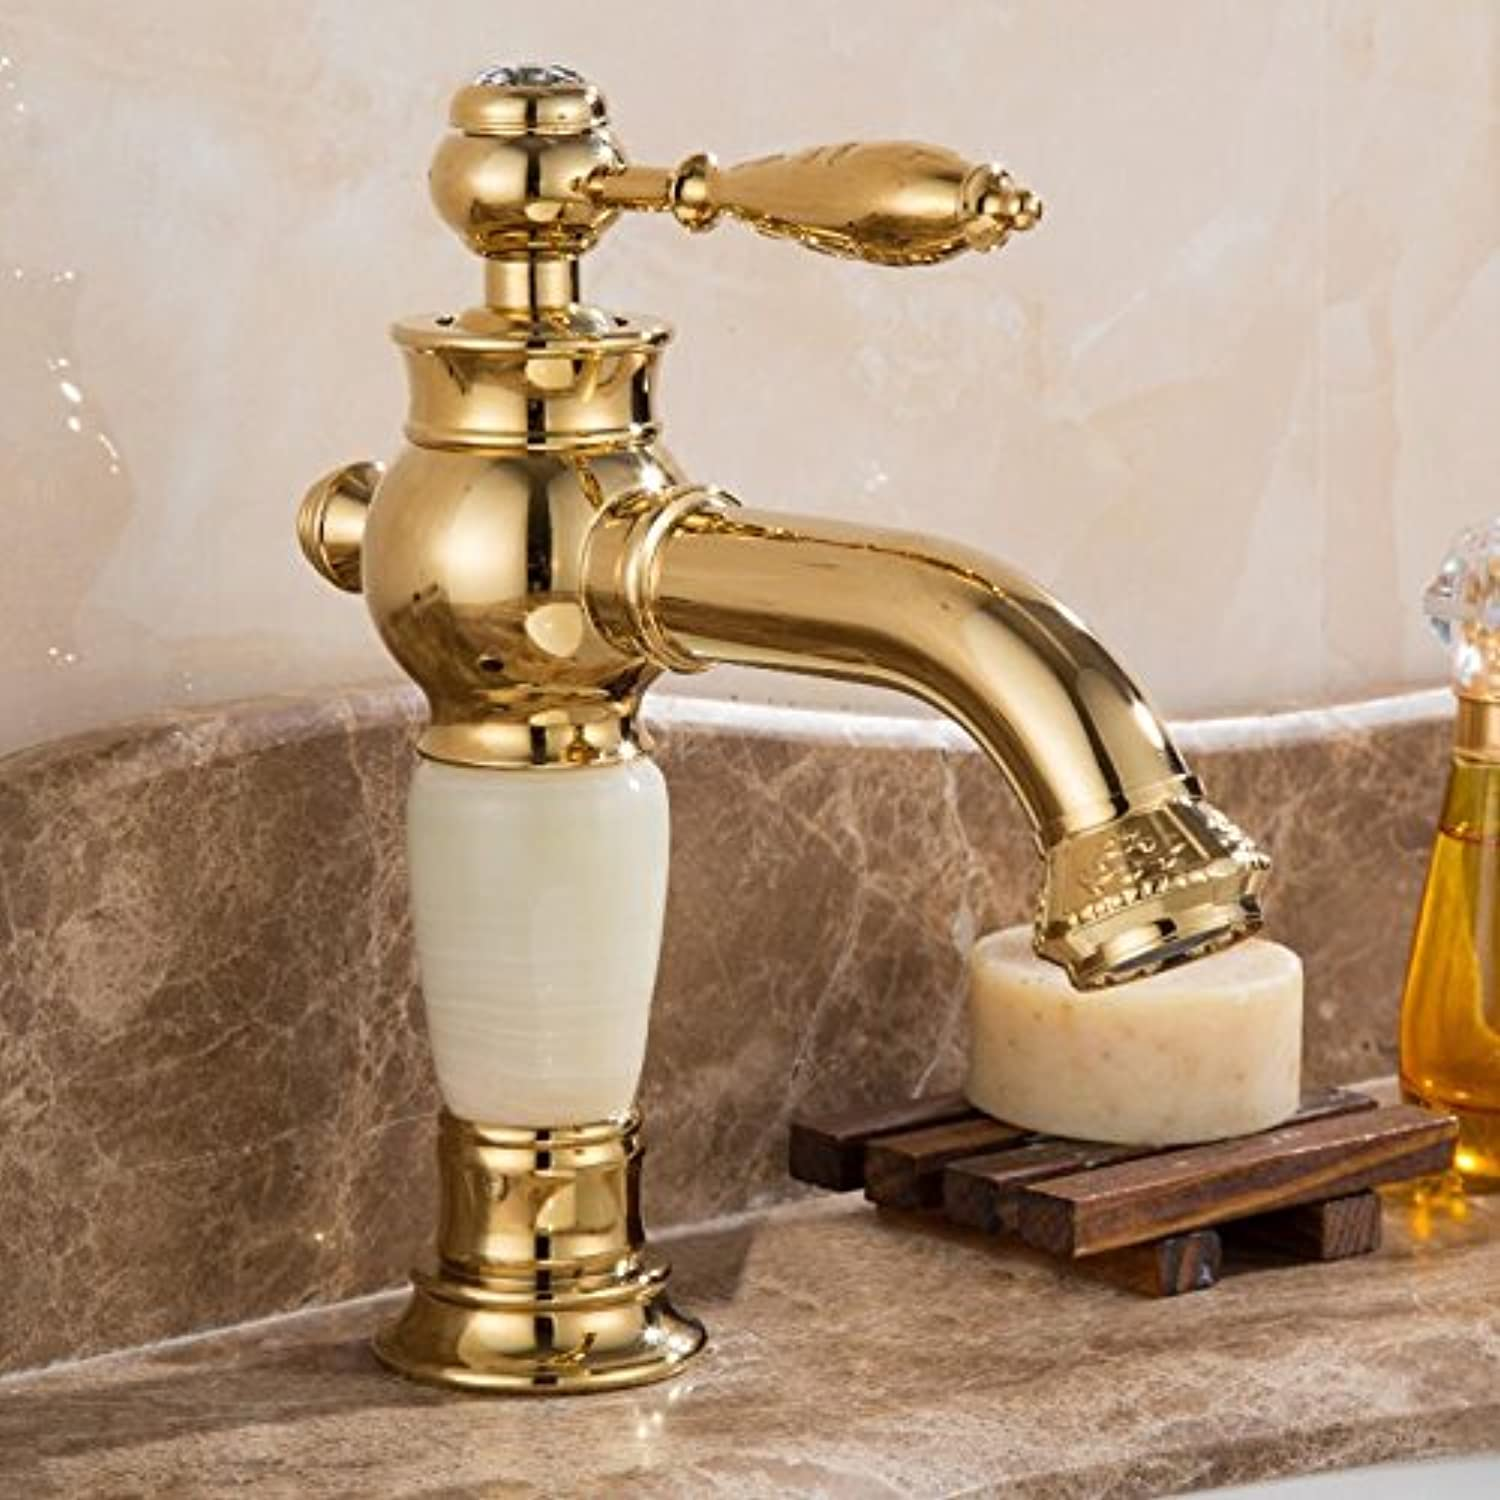 Maifeini Faucet, Faucet, Faucet, Wash Your Face, Wash Your Hands, Deck Mounted Brass And Jade Bathroom Faucet Basin Series Mixer Click gold Heat Sink Faucet Bath Faucet Basin Sink, Short And